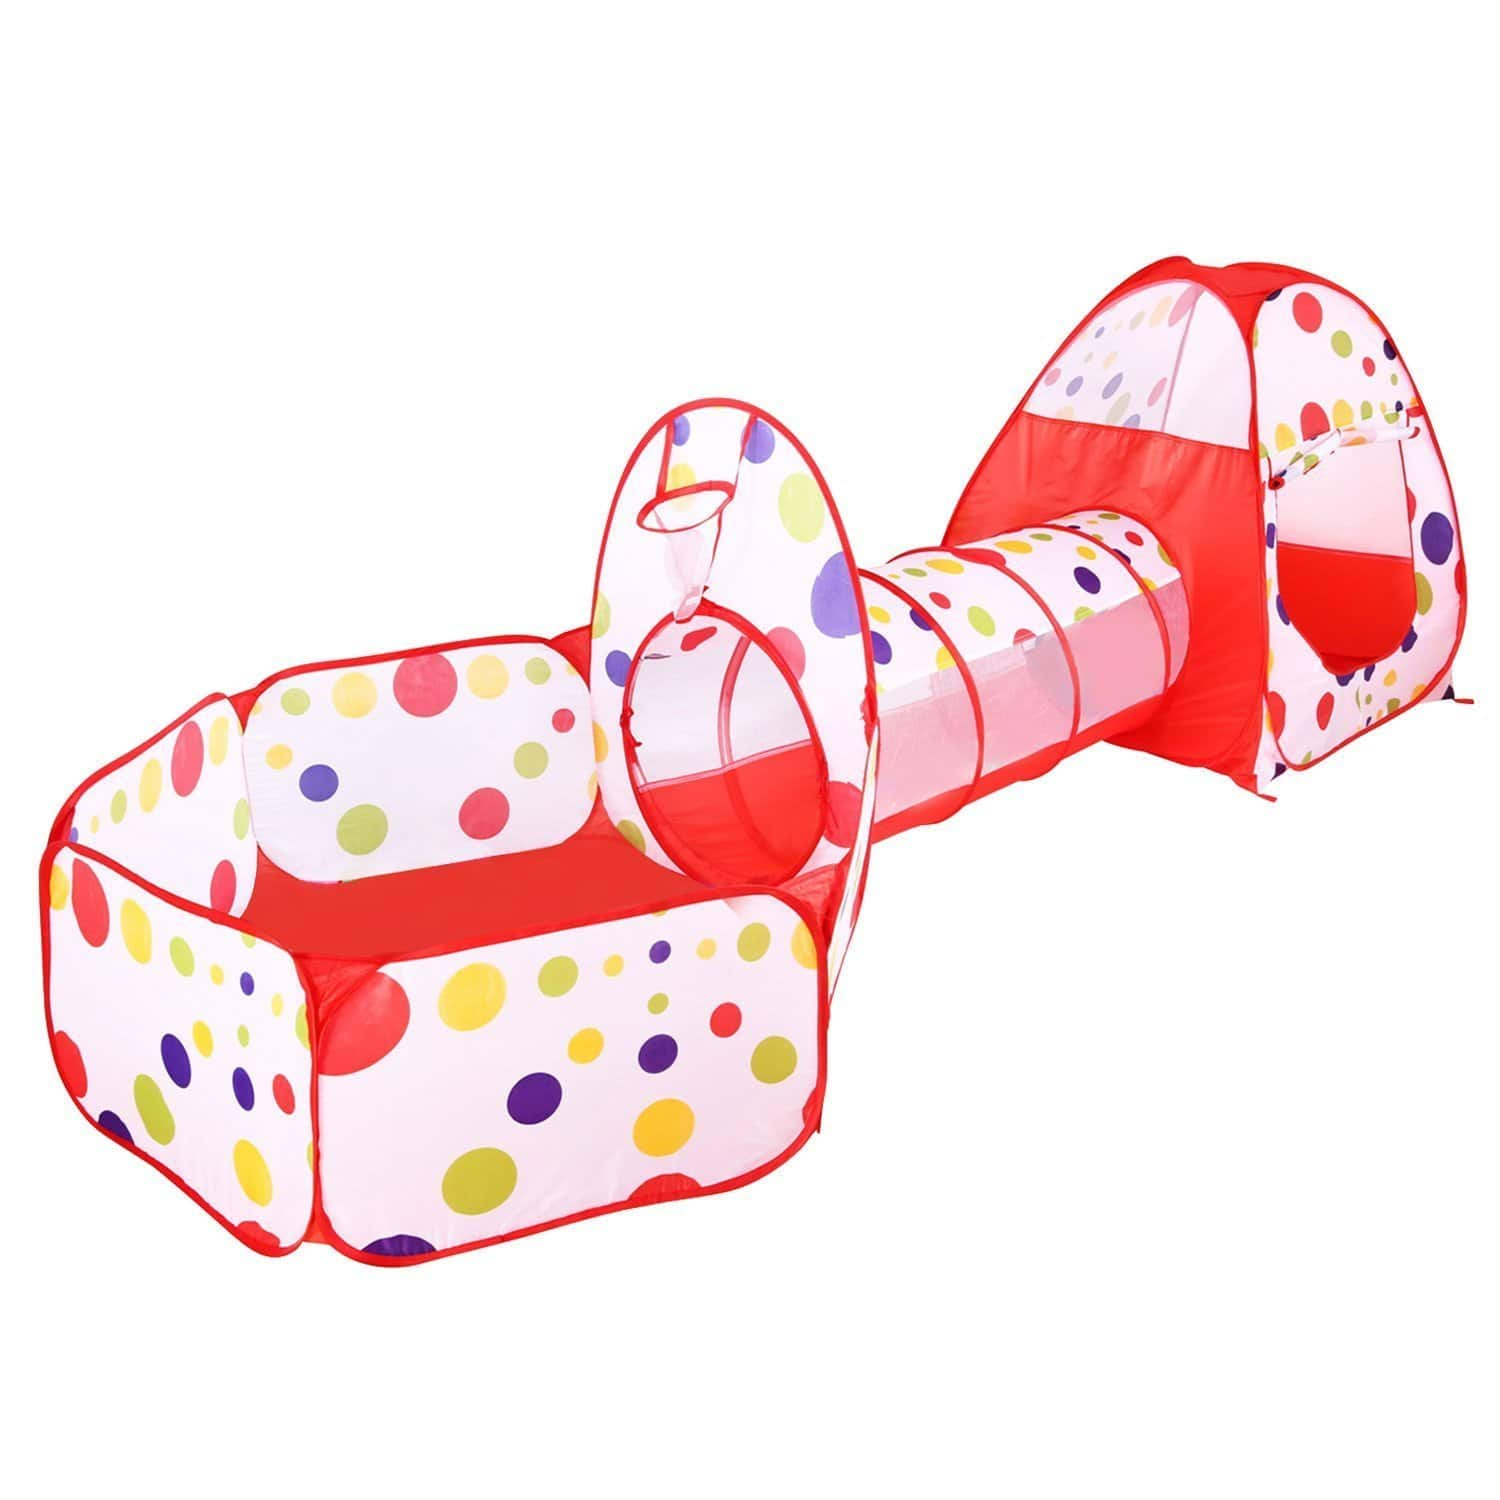 BATTOP Toys&Games Children Play Tent Game Playhouse (Red 3 in 1)  $19.83